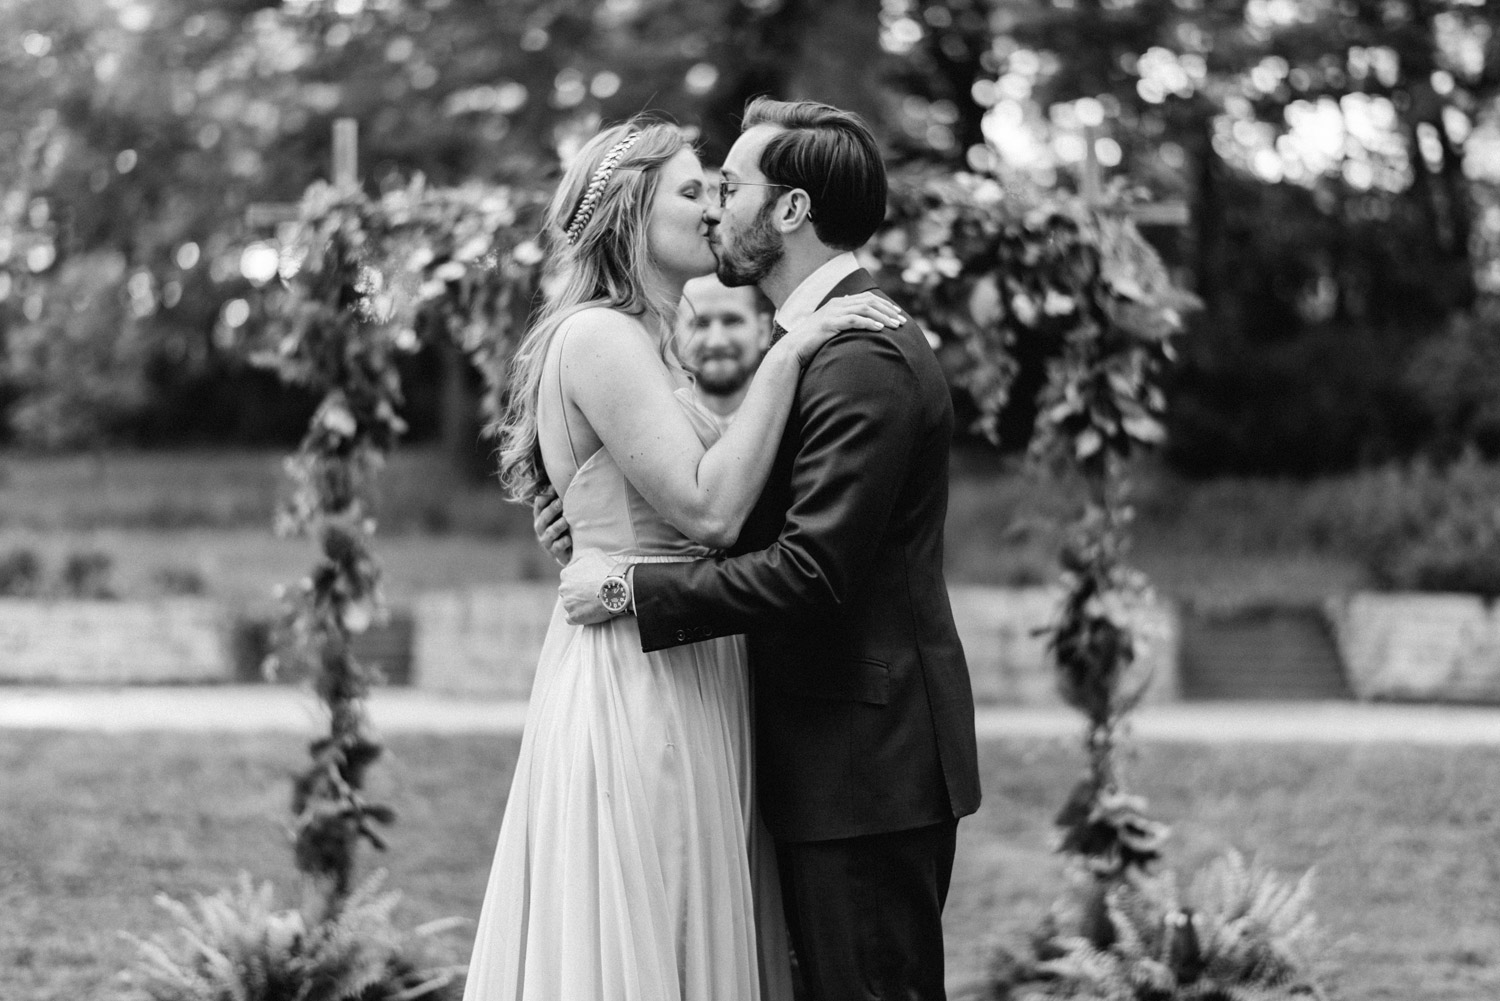 Bride and groom share first kiss together during wedding at Des Moines Art Center